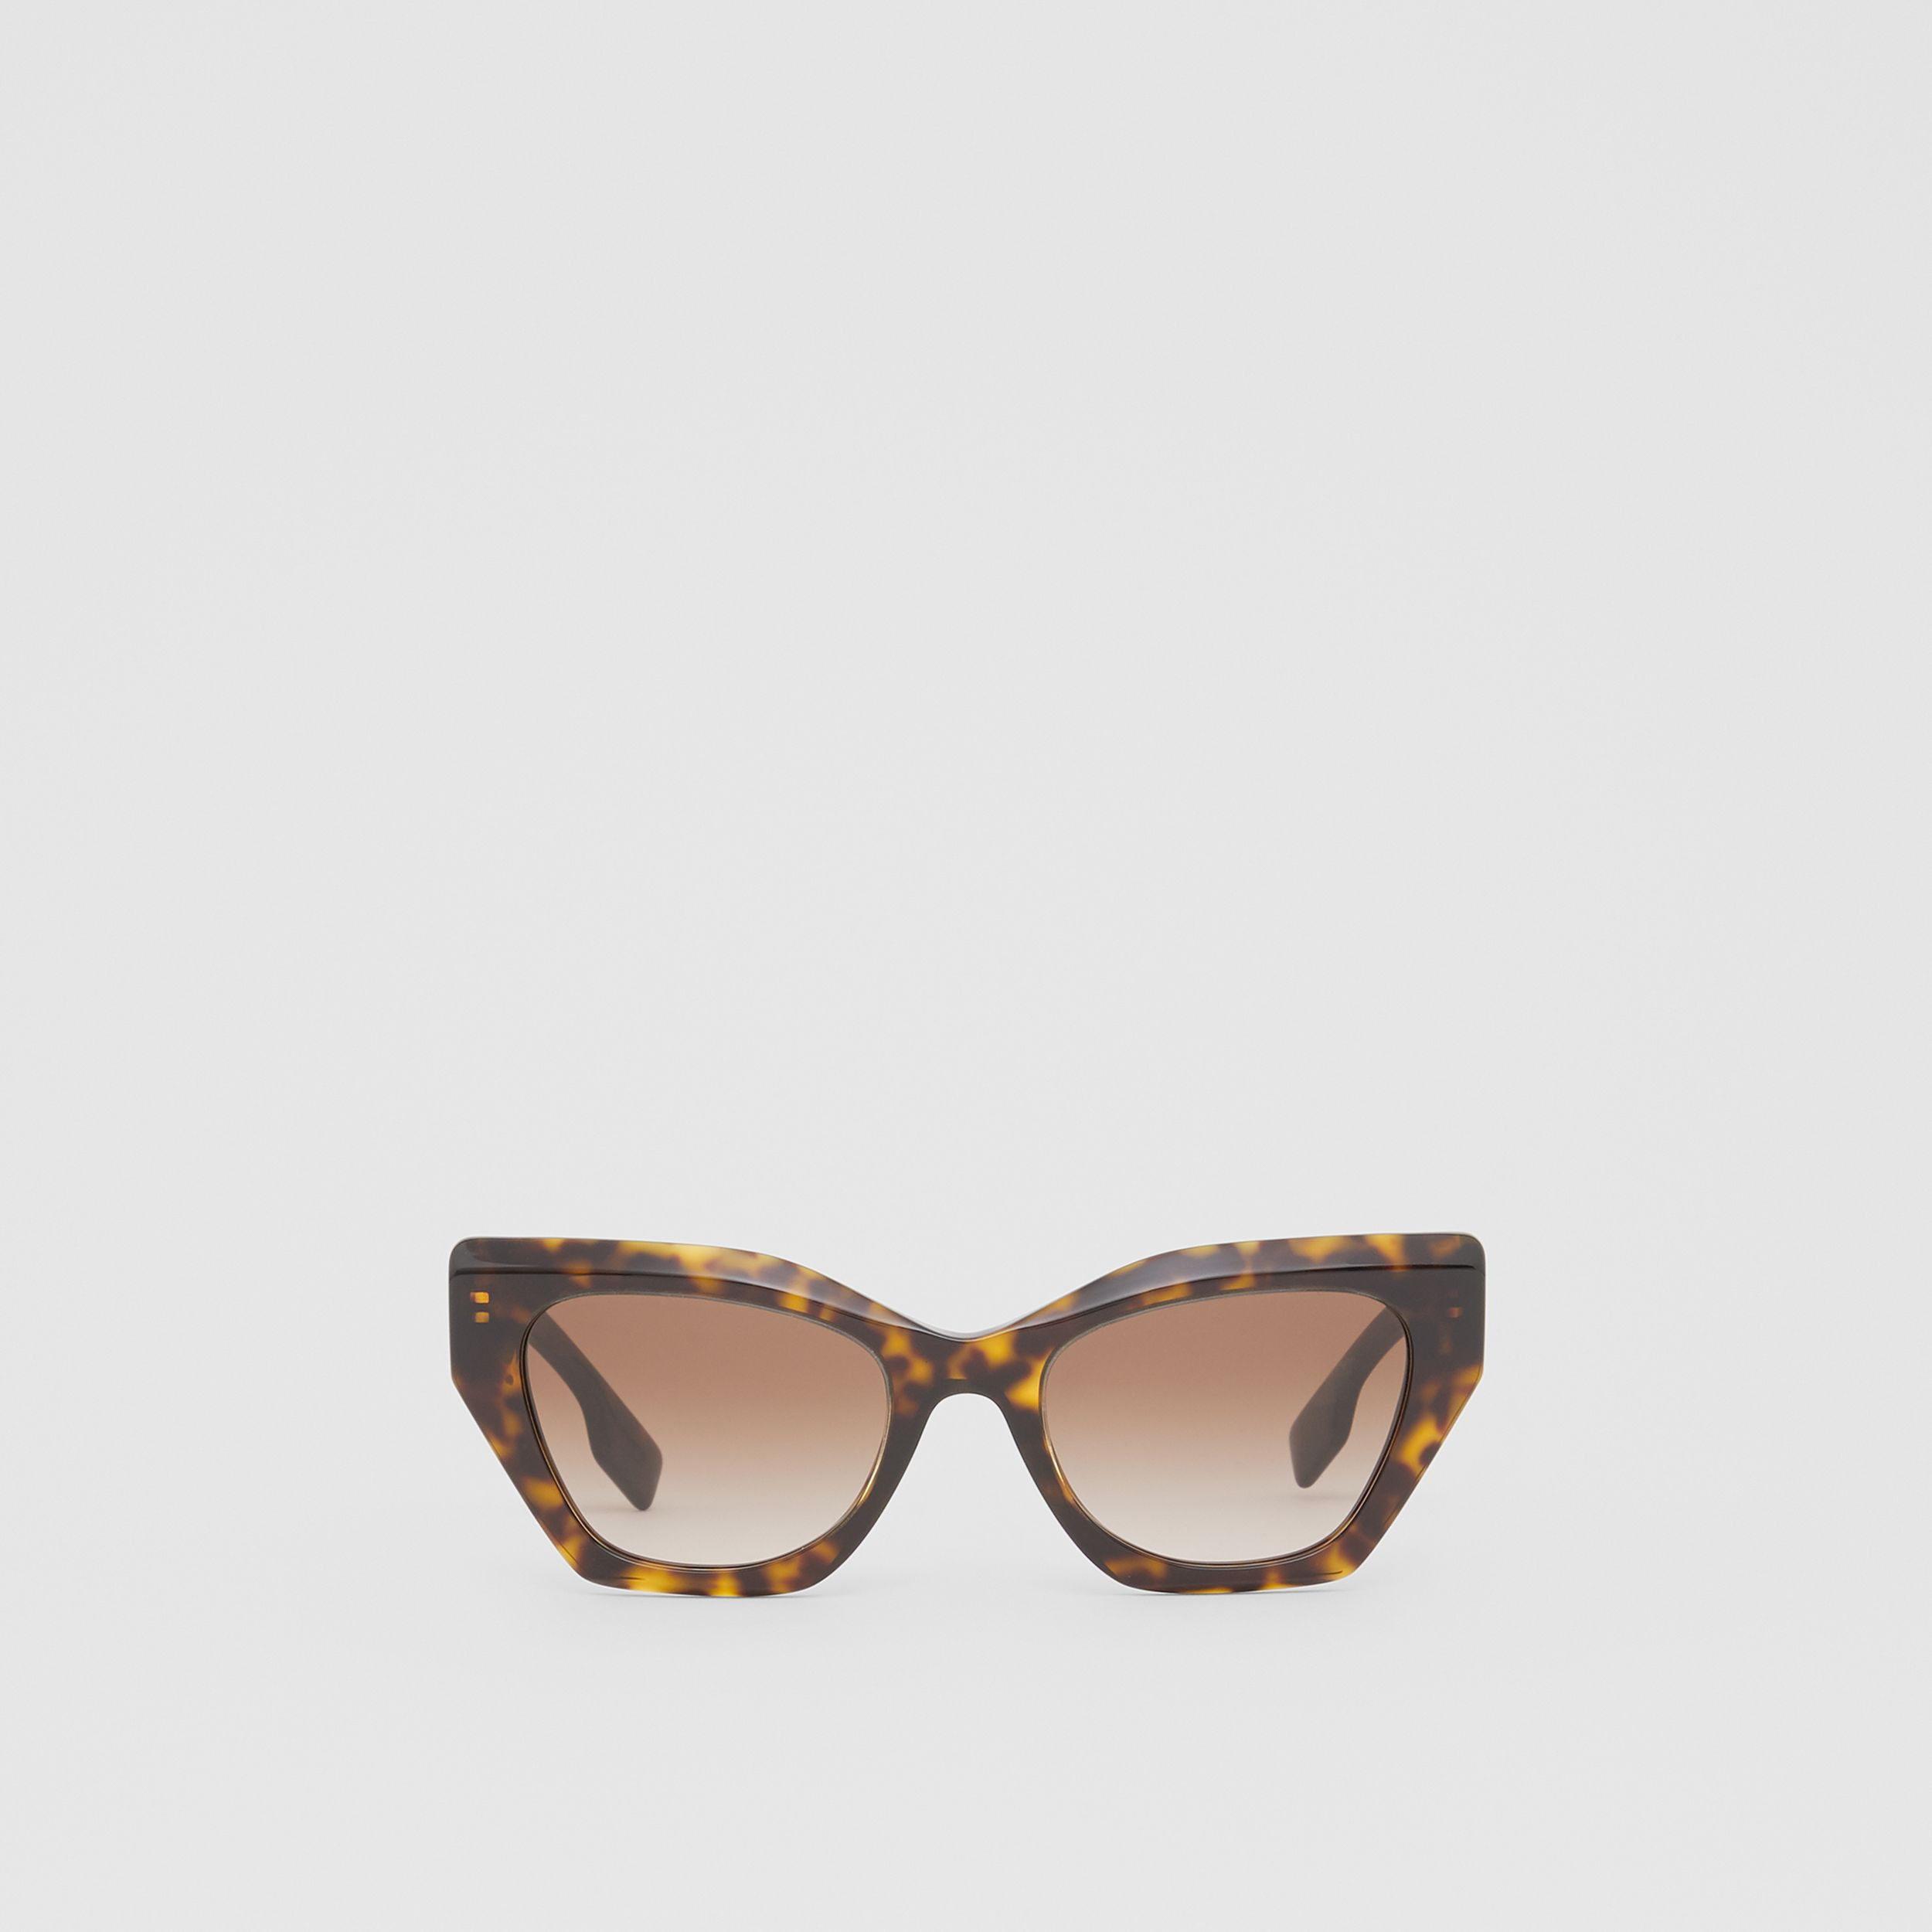 Butterfly Frame Sunglasses in Tortoiseshell - Women | Burberry - 1